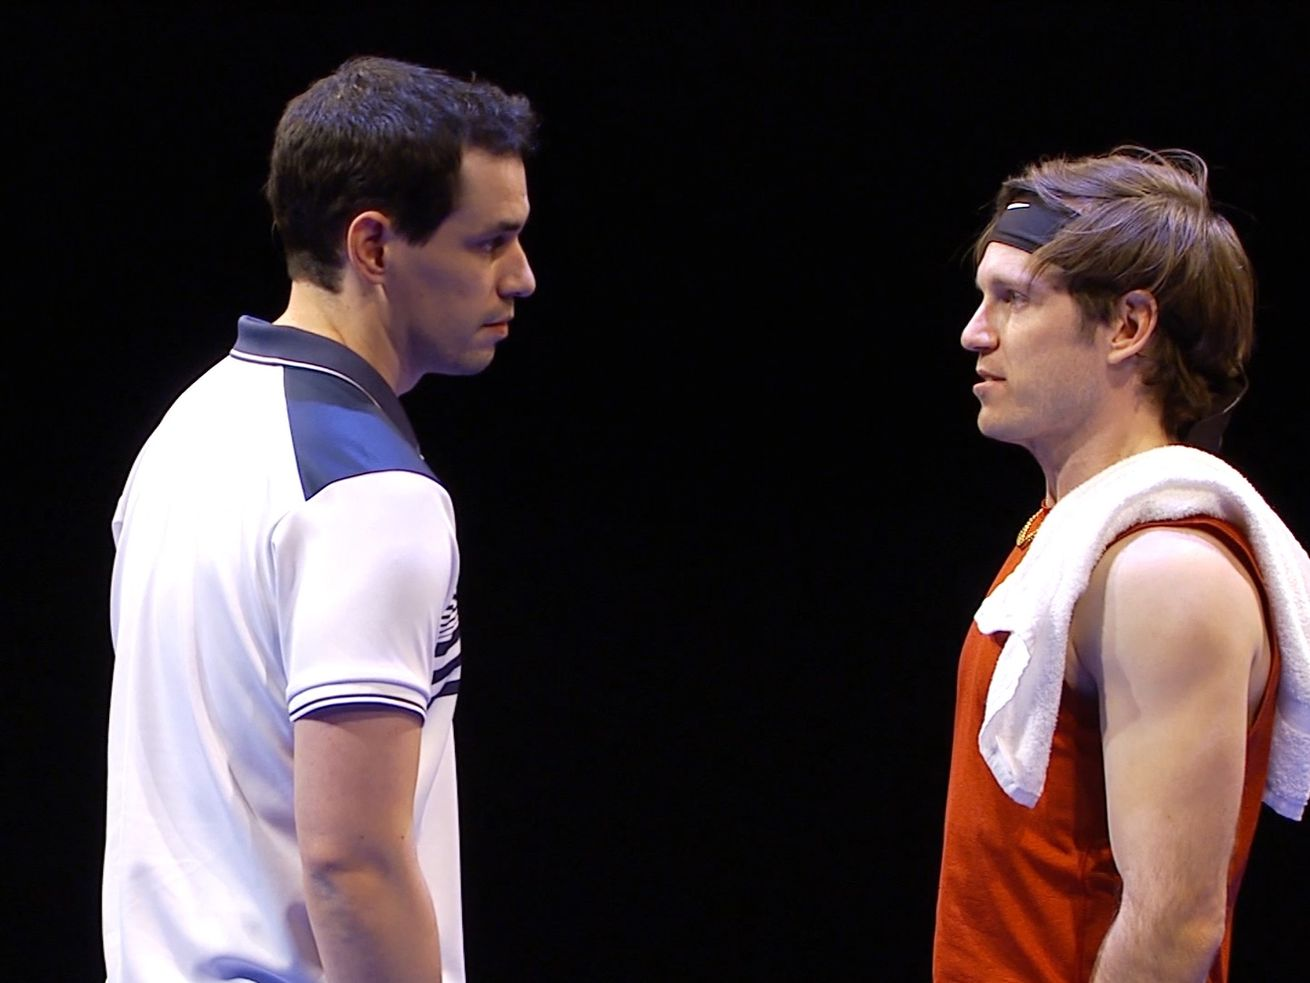 Ryan Hallahan (left) and Christopher Sheard star as tennis rivals in Writers Theatre's production of 'The Last Match.""